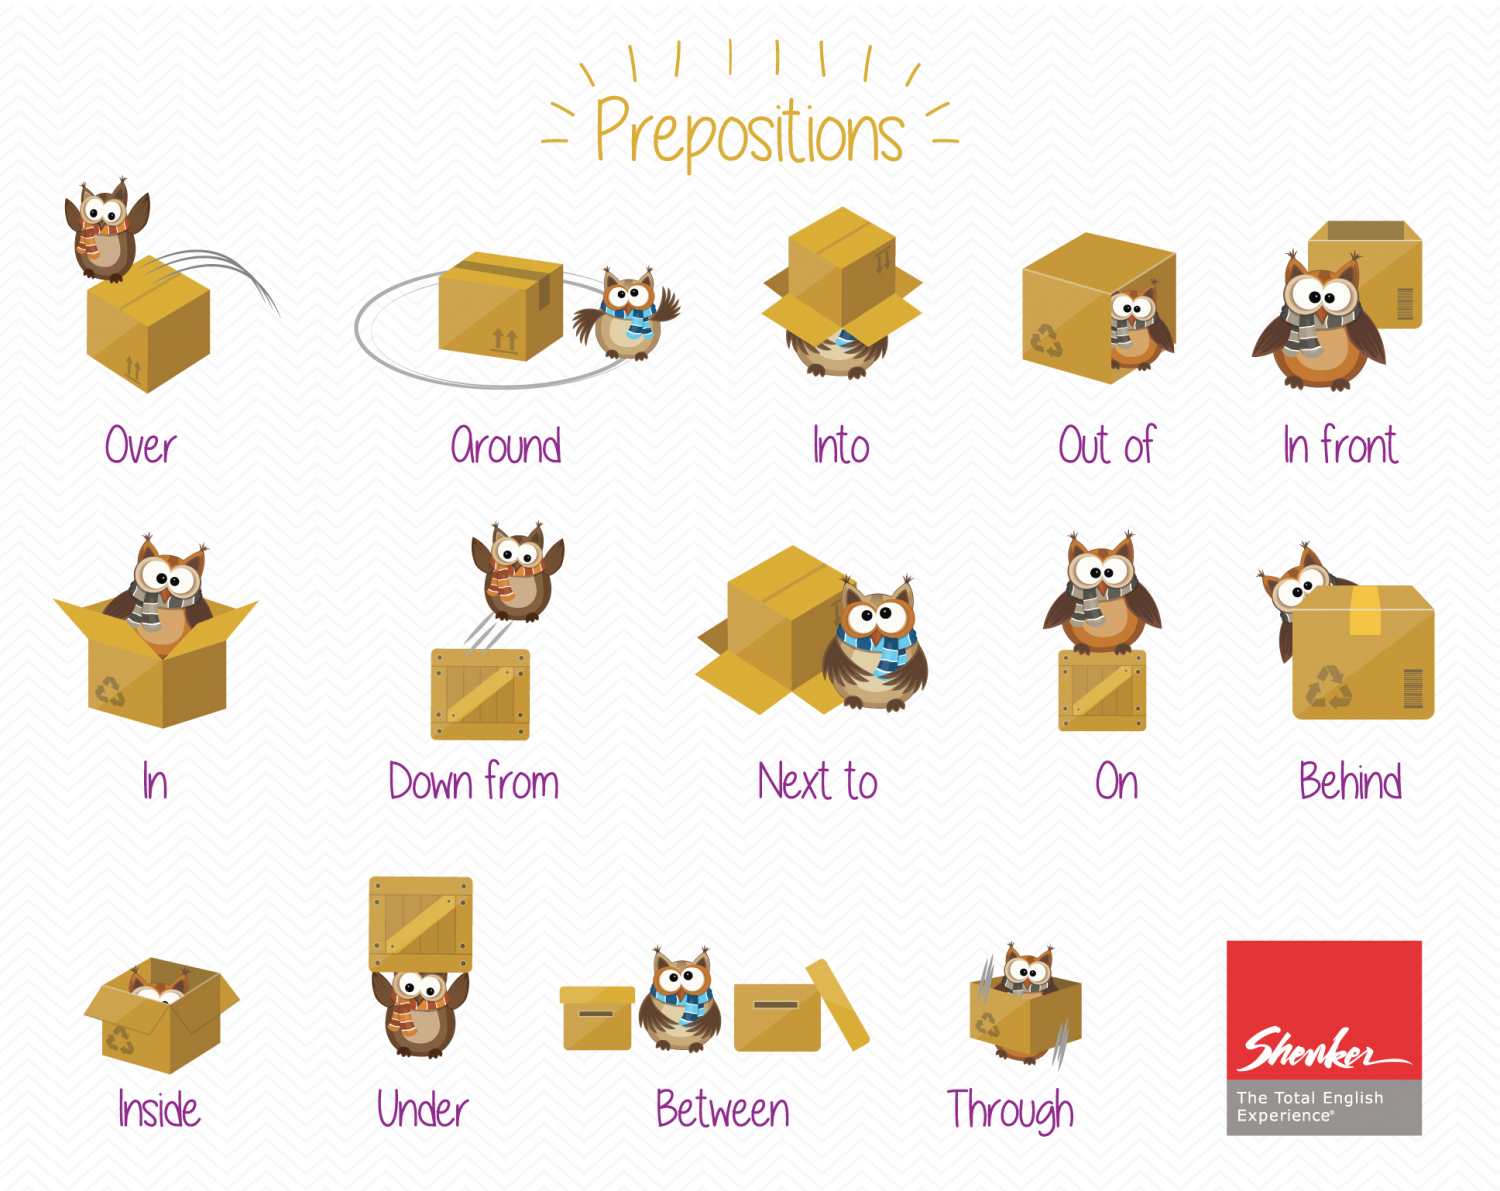 shenker english tips prepositions visual ly